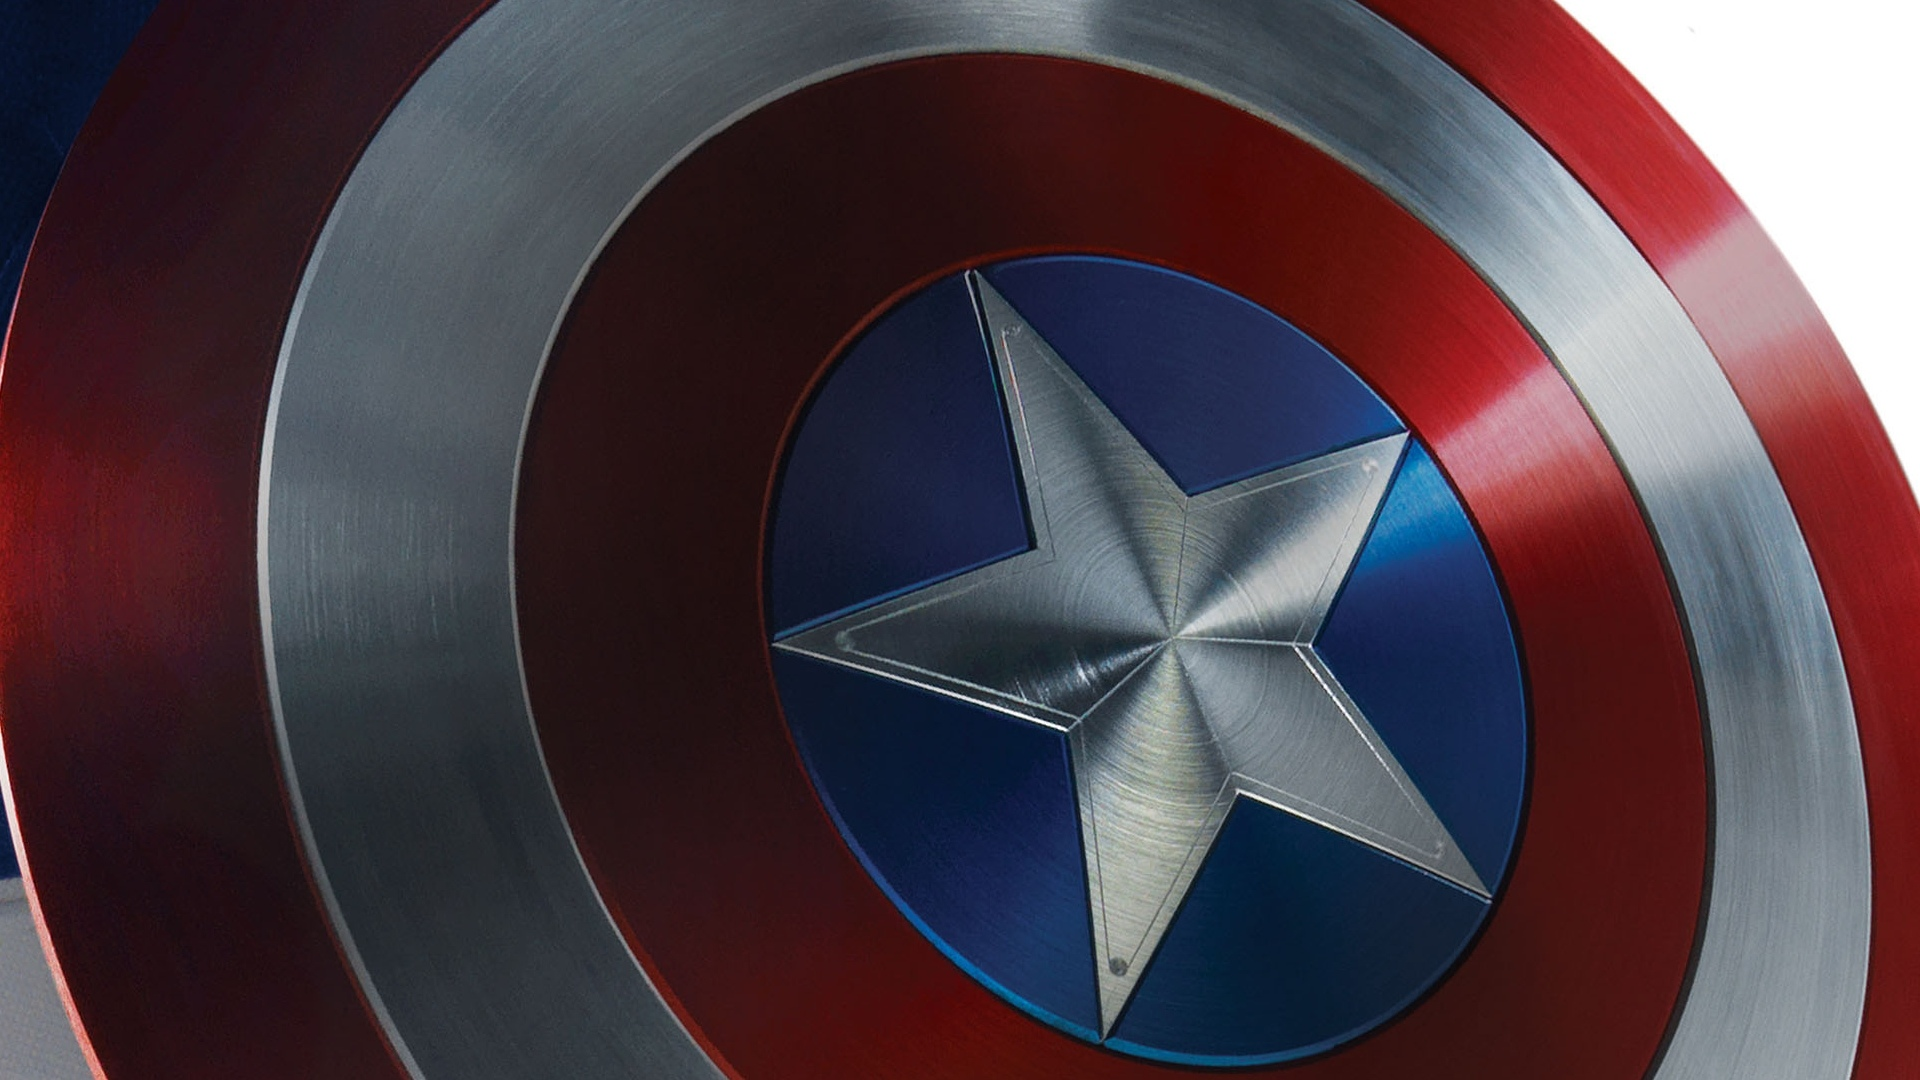 Captain-America-Shield-Photo-for-Desktop-Background-1920x1080-px-KB-wallpaper-wp3803626